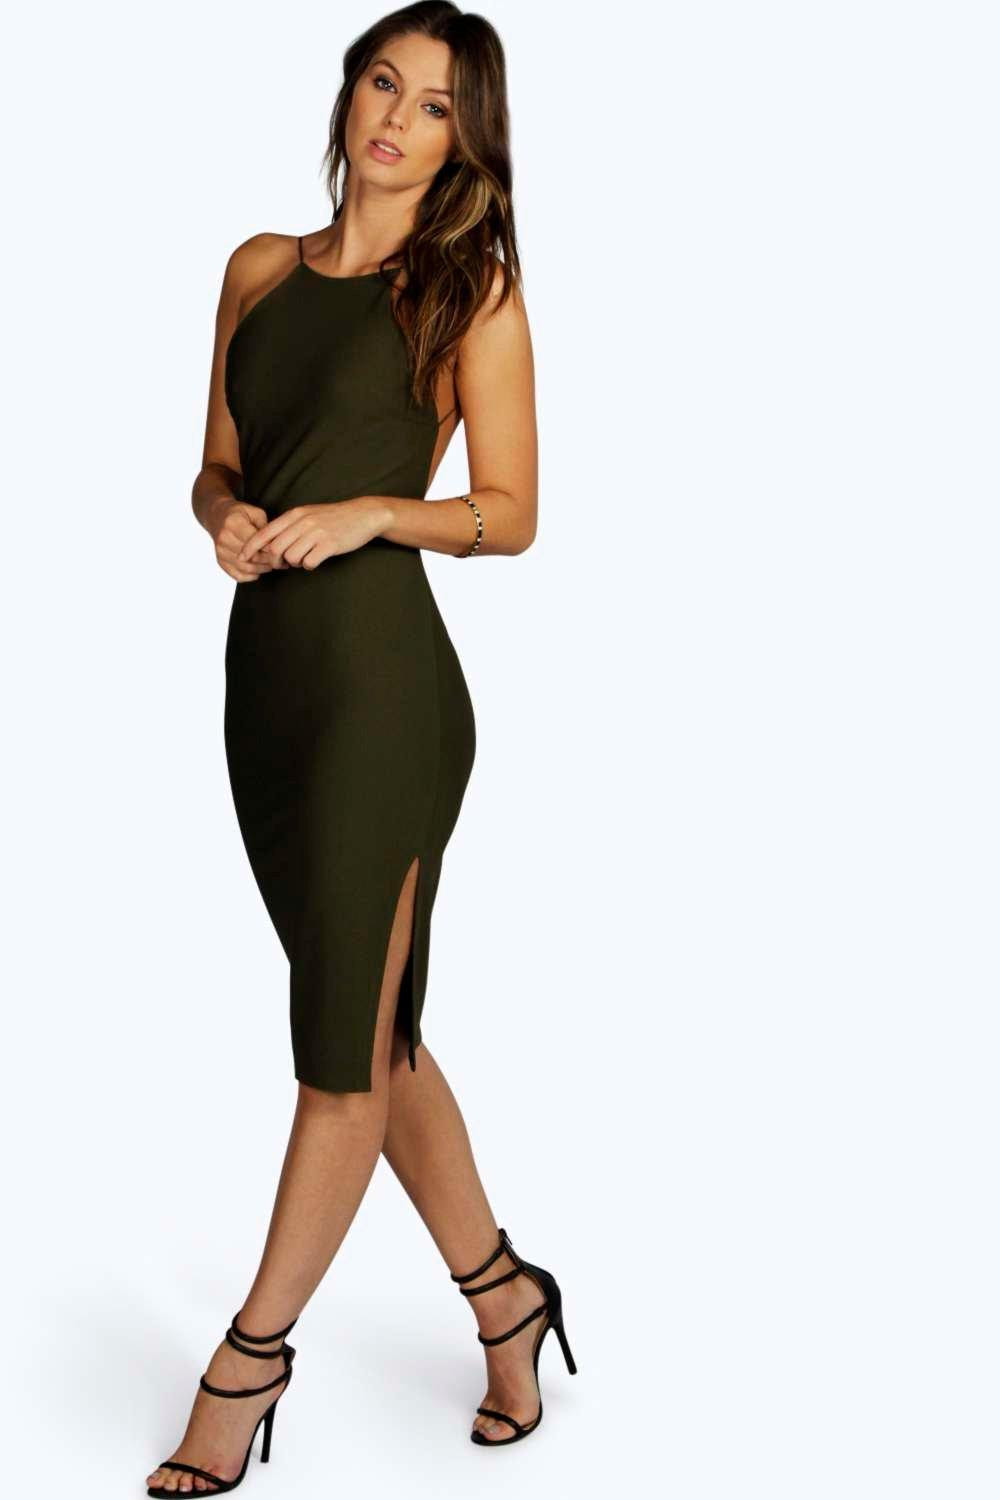 California in a bodycon dress world is what the amazon quality